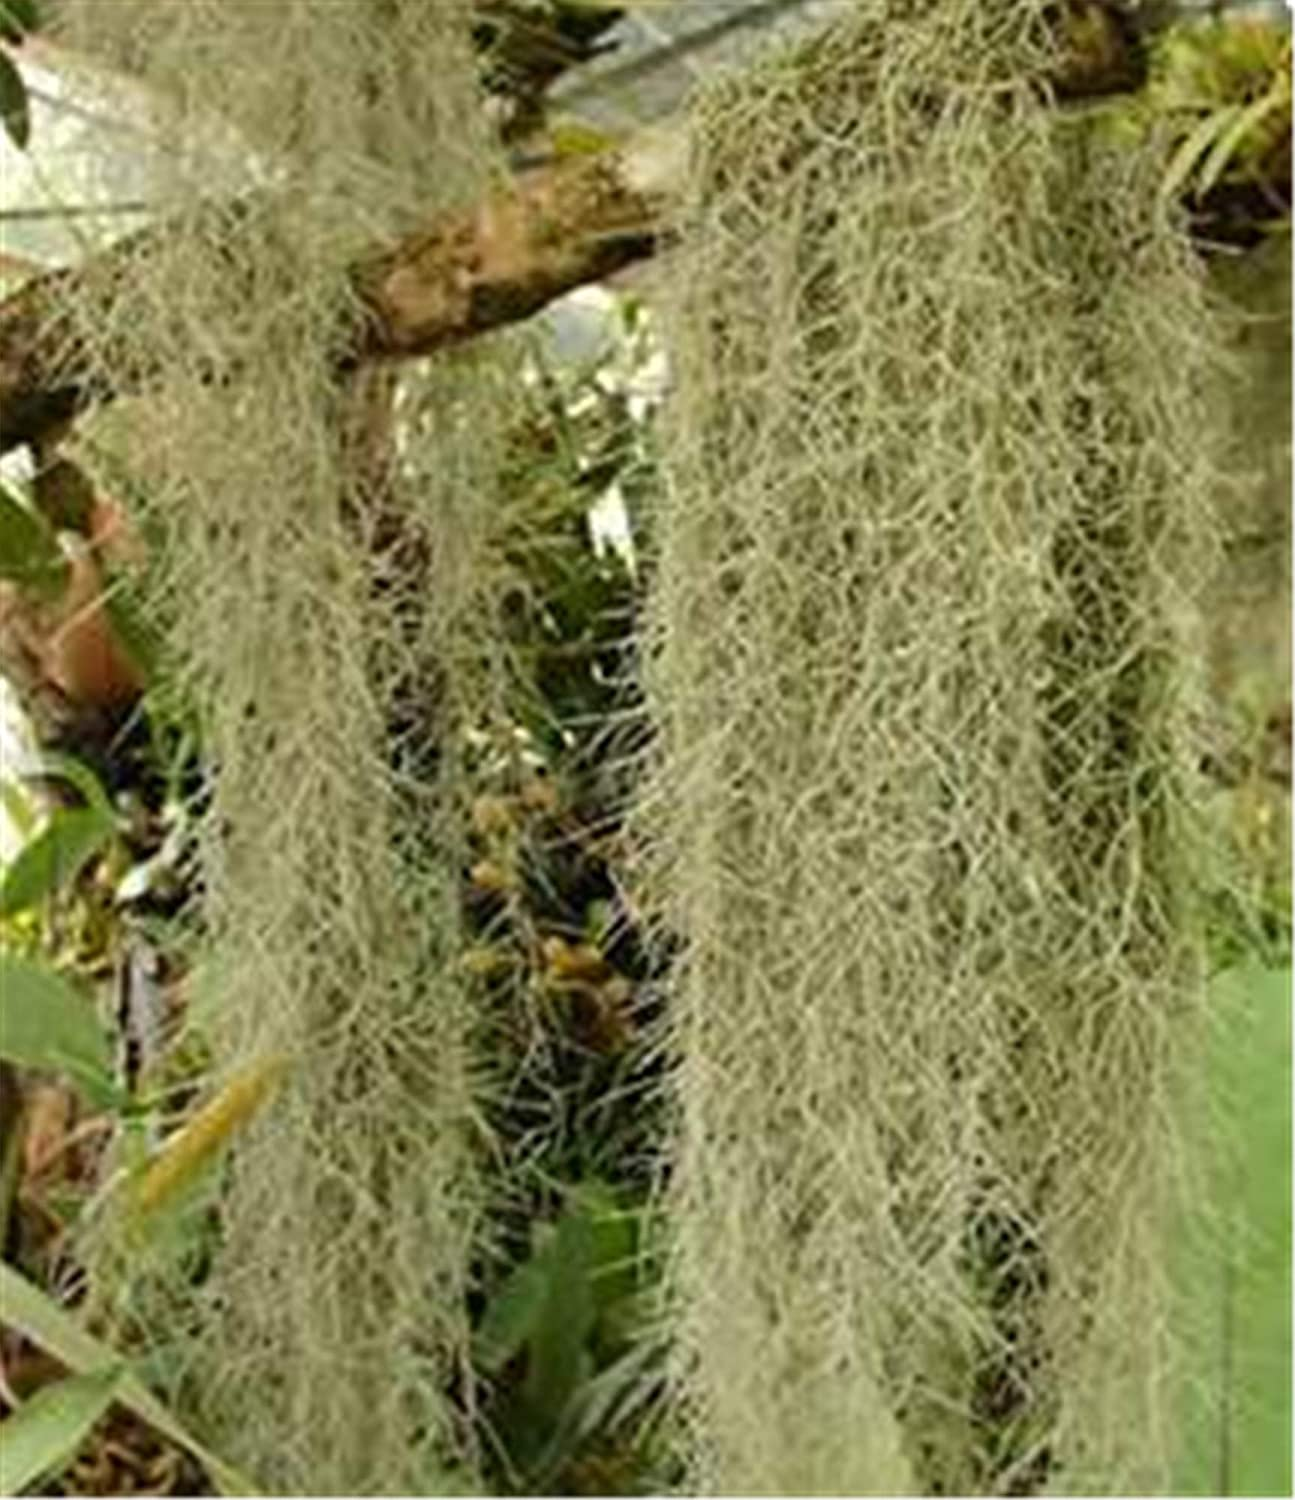 FRESH Max 49% OFF SPANISH MOSS 5 lbs Large-scale sale - crafts for costumes displays and